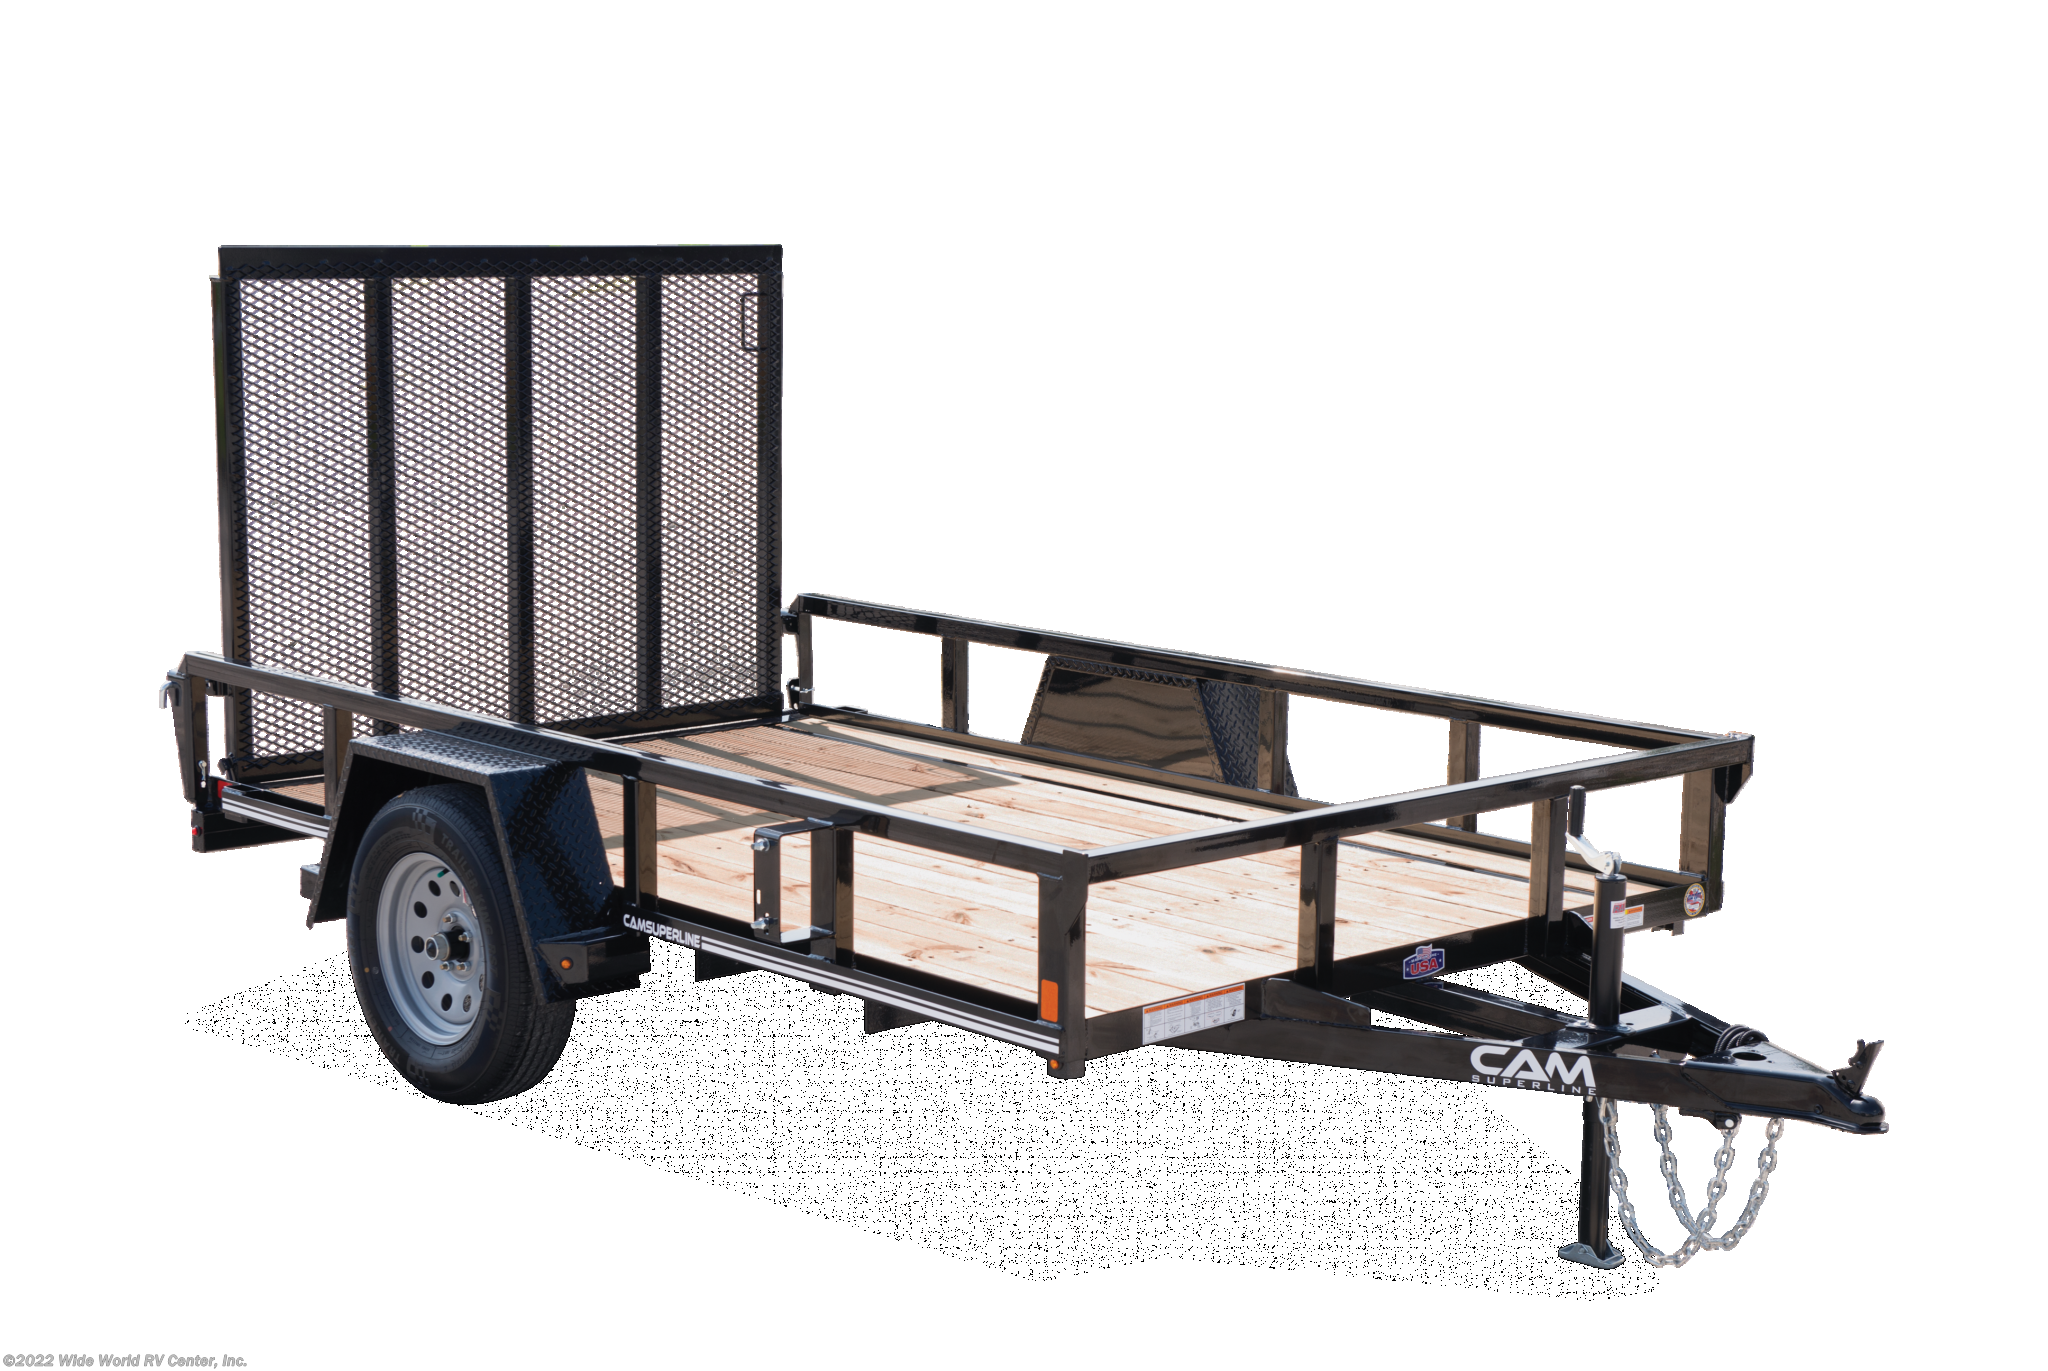 Cam Tube 2020 cam superline rv 6x12 cam tube top utility trailer for sale in wilkes-barre, pa 18702 | 505037